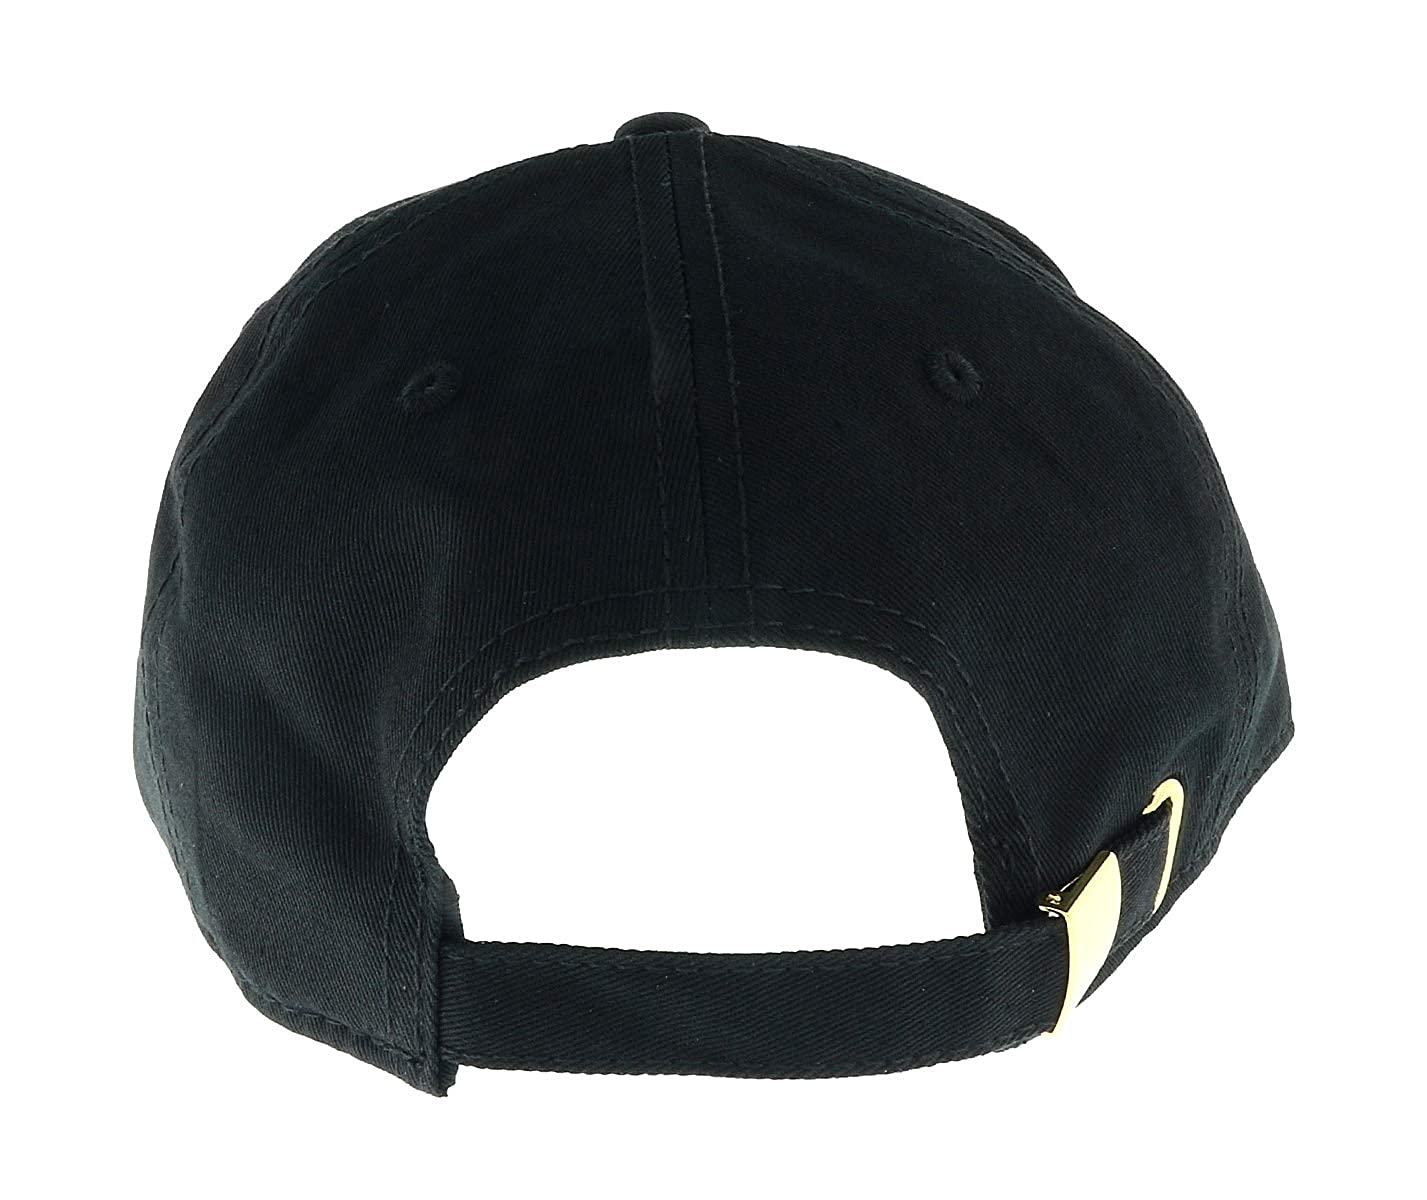 105278d6 Versace Jeans Mens Embroidered Tiger Baseball Cap O/S Black: Amazon.co.uk:  Clothing